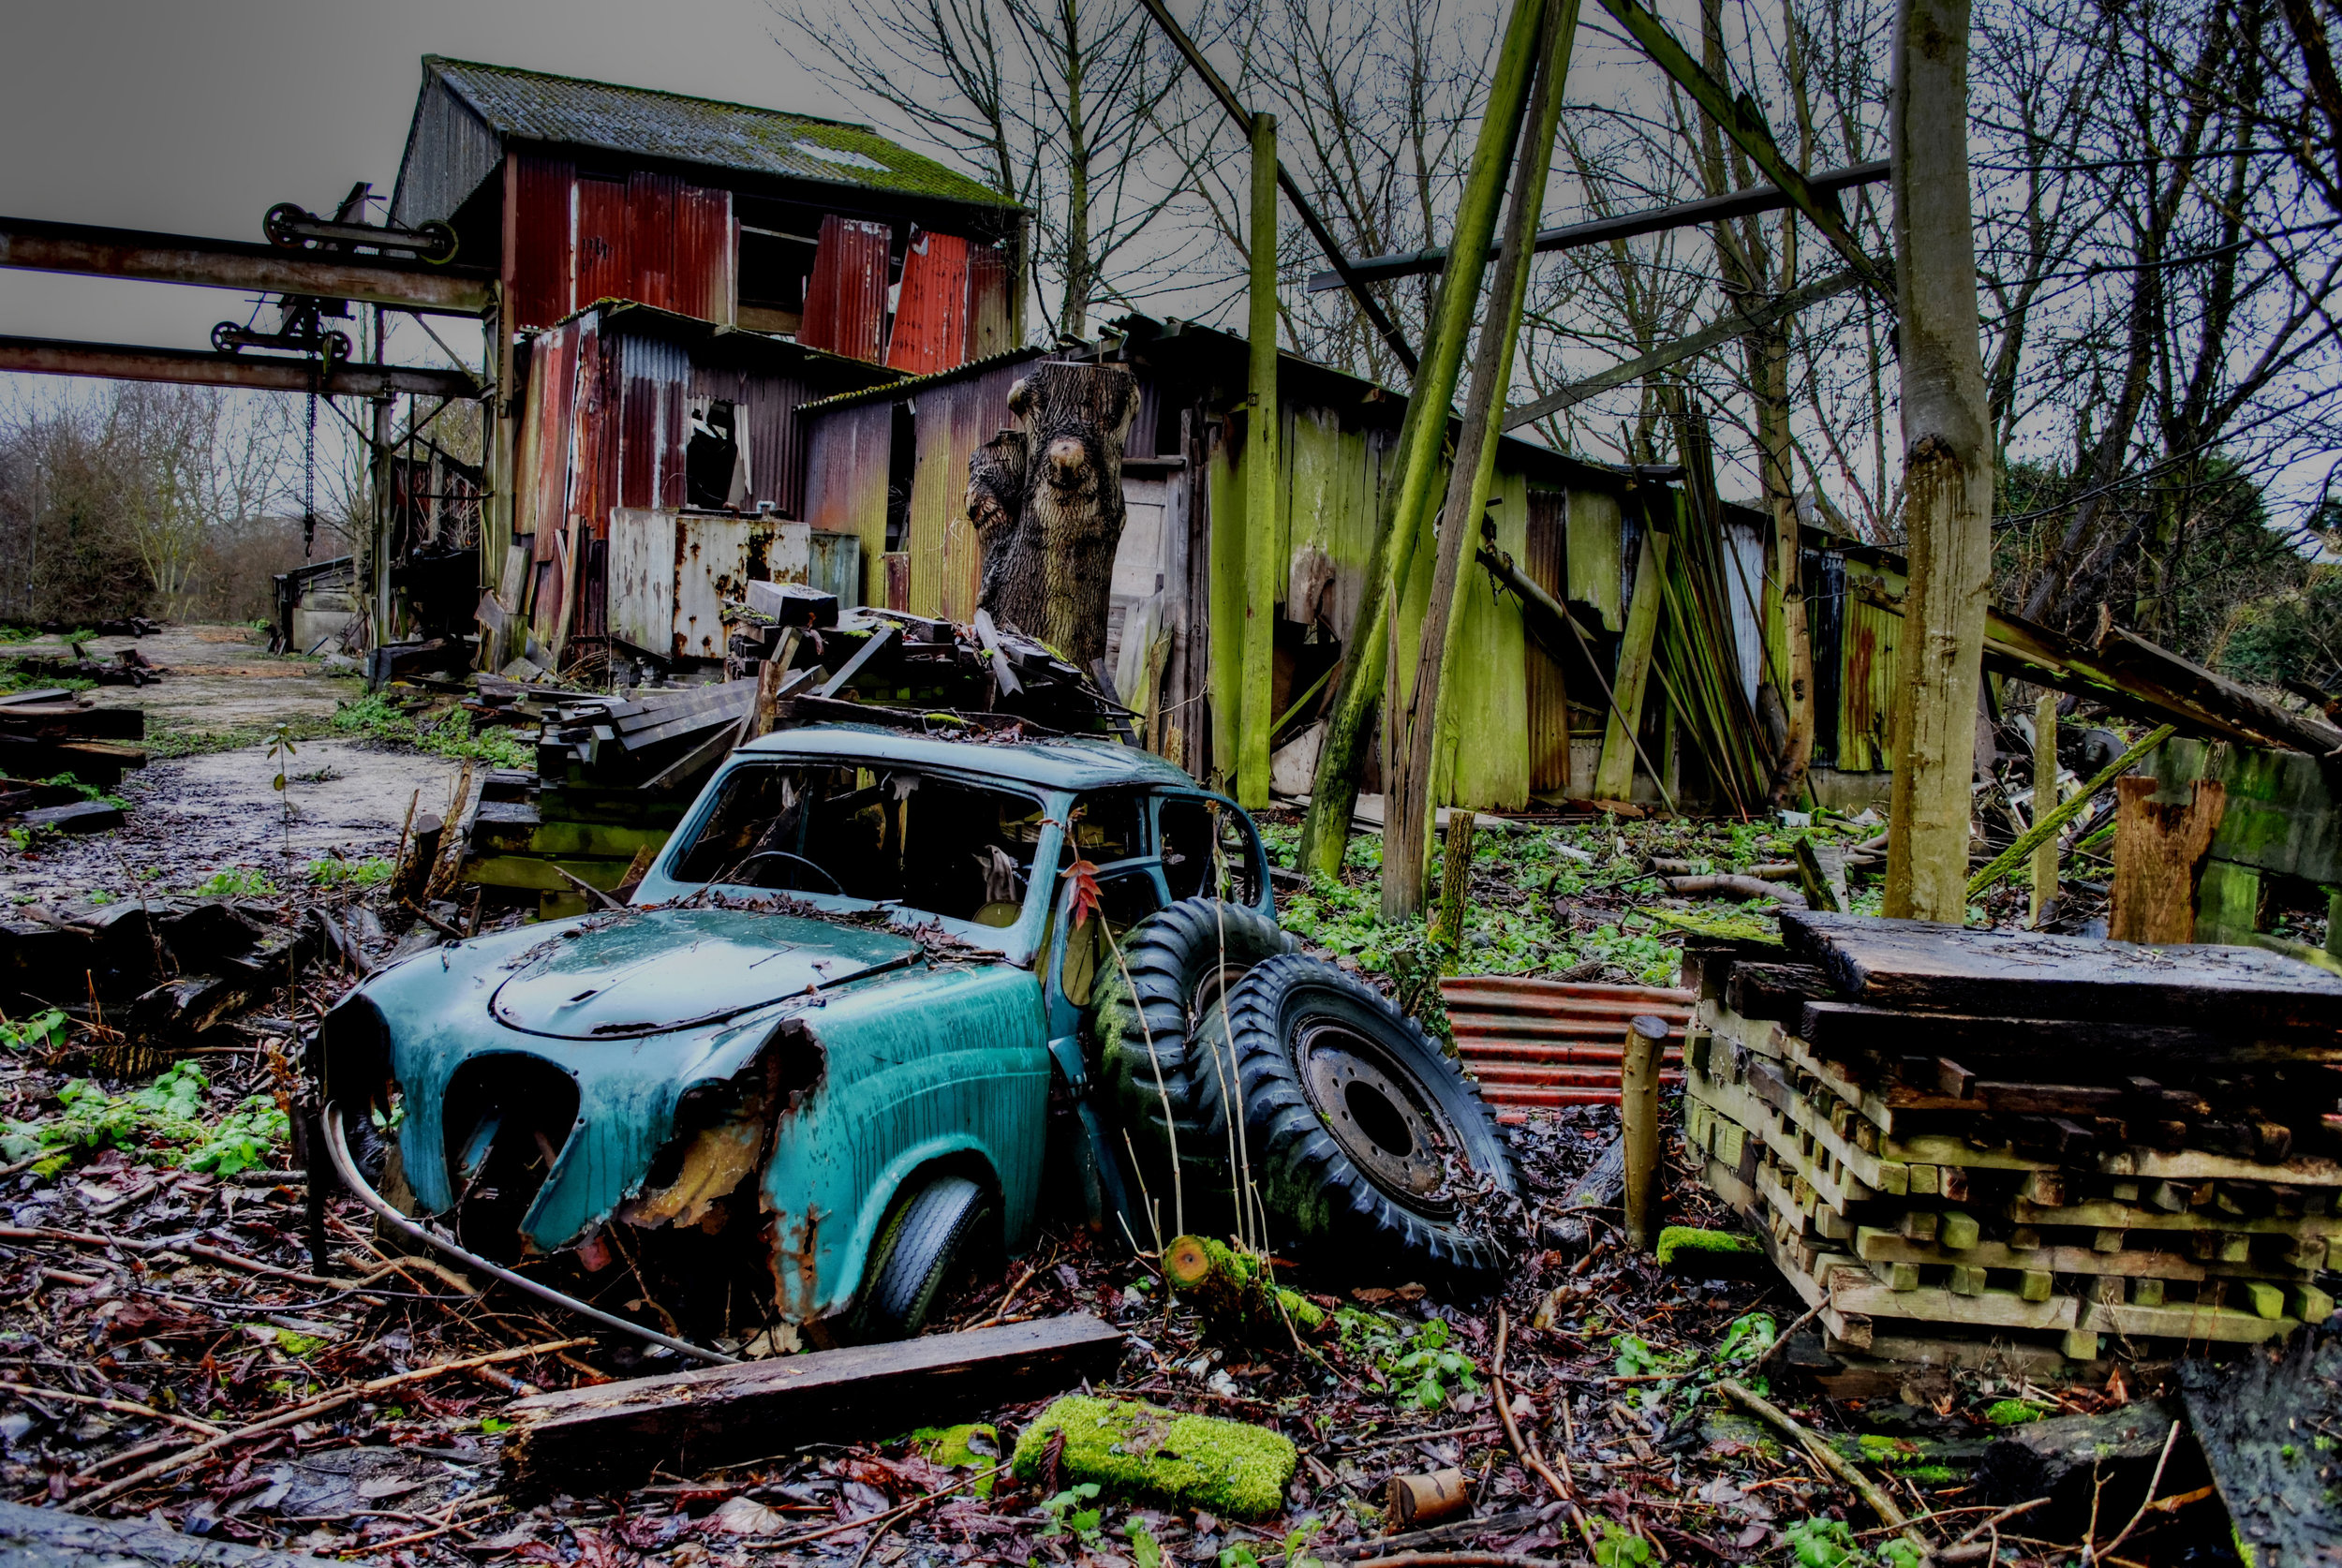 Woodyard Memories - A pretty decayed old-school yard with retro abandoned vehicles